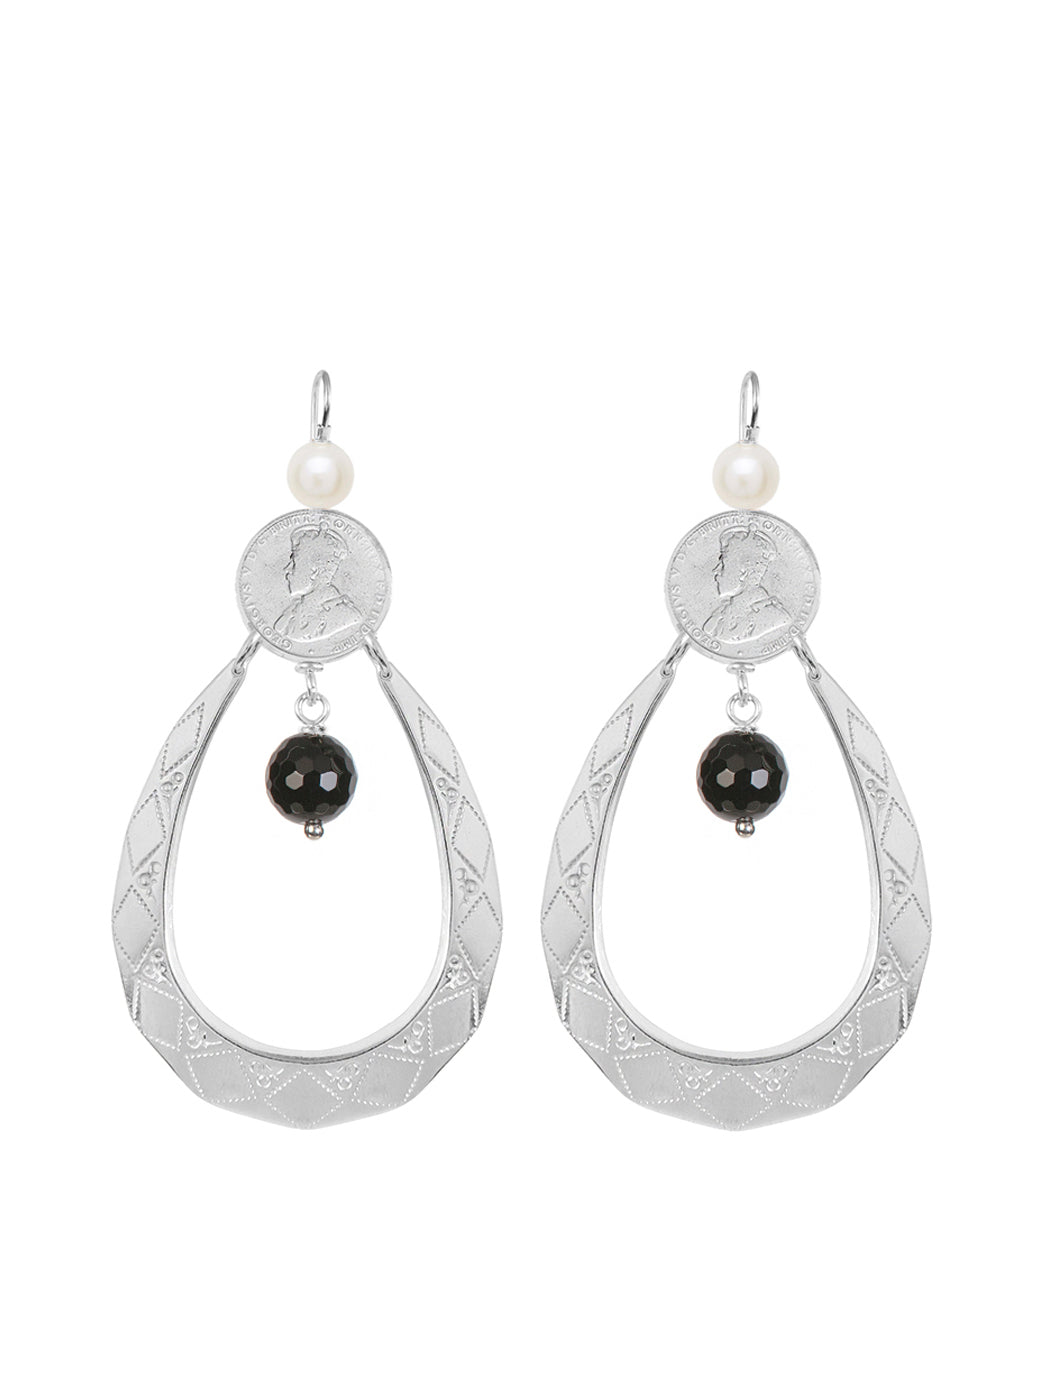 Fiorina Jewellery Sugar Drop Earrings Black Onyx & Pearl